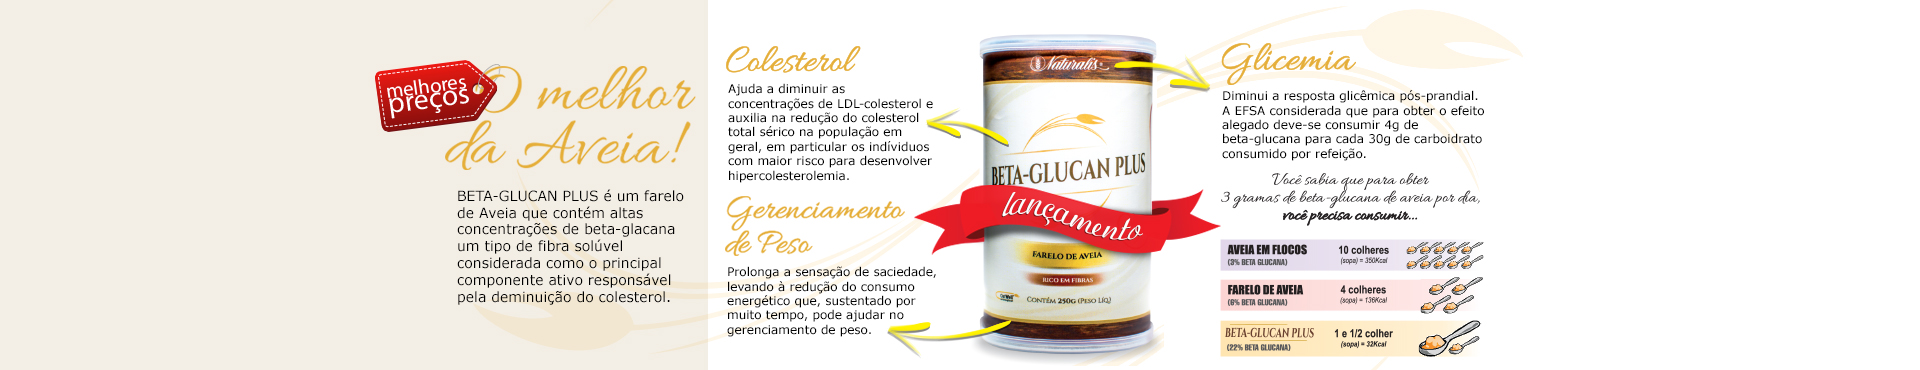 Naturalis Beta-Glucan Plus